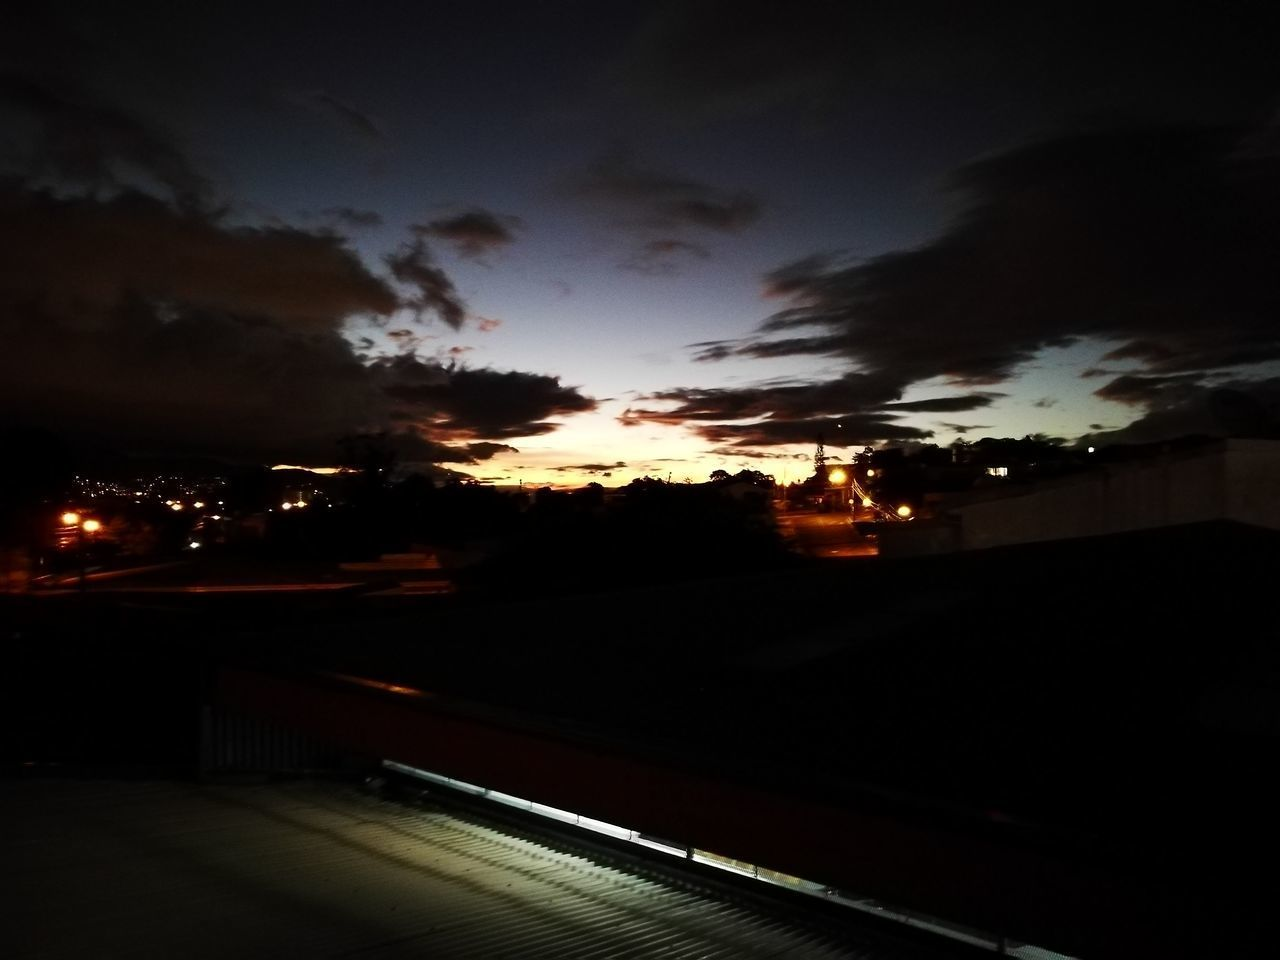 sky, sunset, transportation, silhouette, city, illuminated, no people, night, outdoors, nature, cloud - sky, building exterior, road, architecture